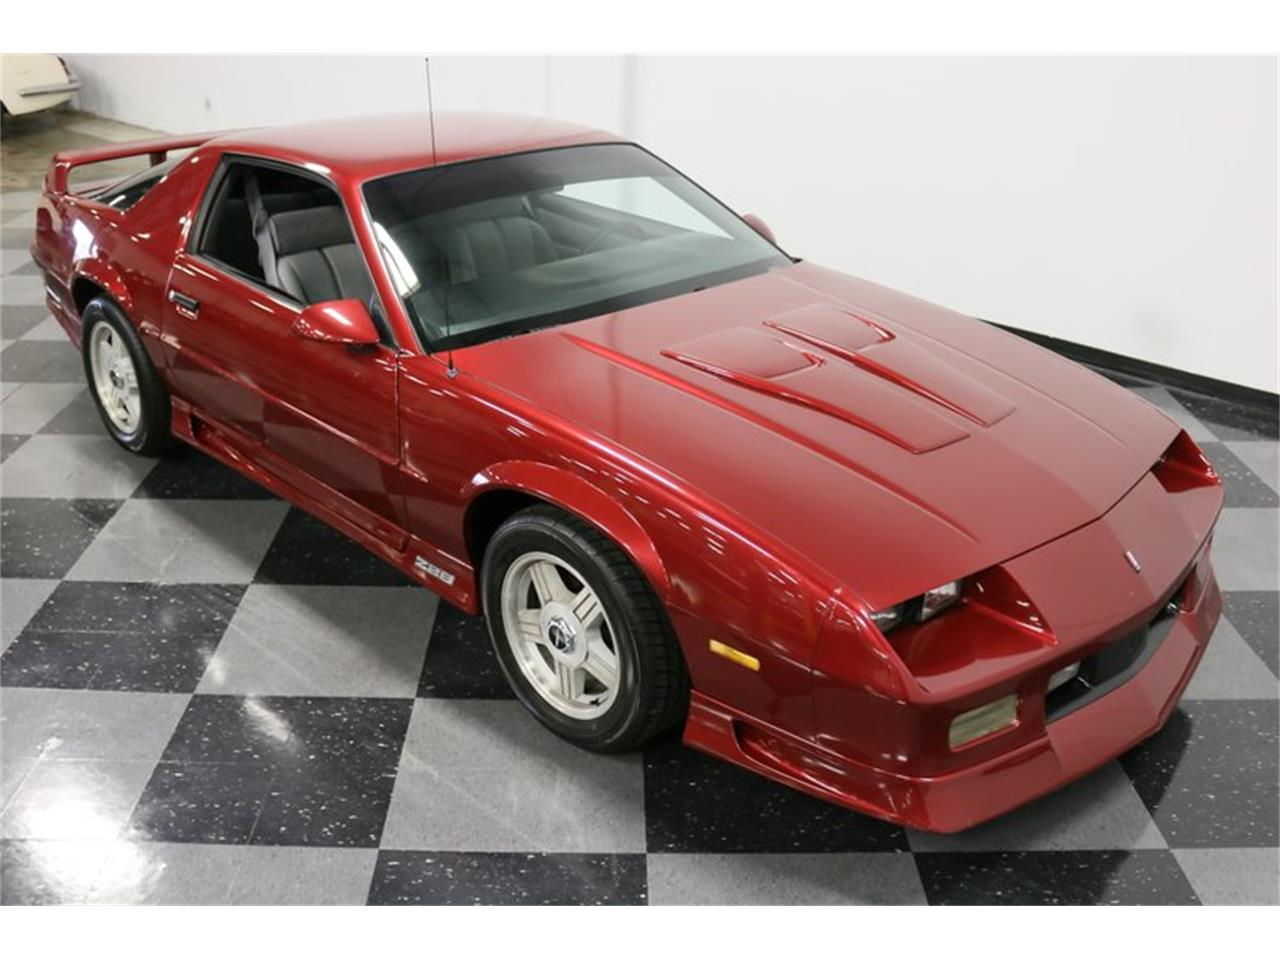 Large Picture of 1991 Camaro located in Texas Offered by Streetside Classics - Dallas / Fort Worth - PBLJ